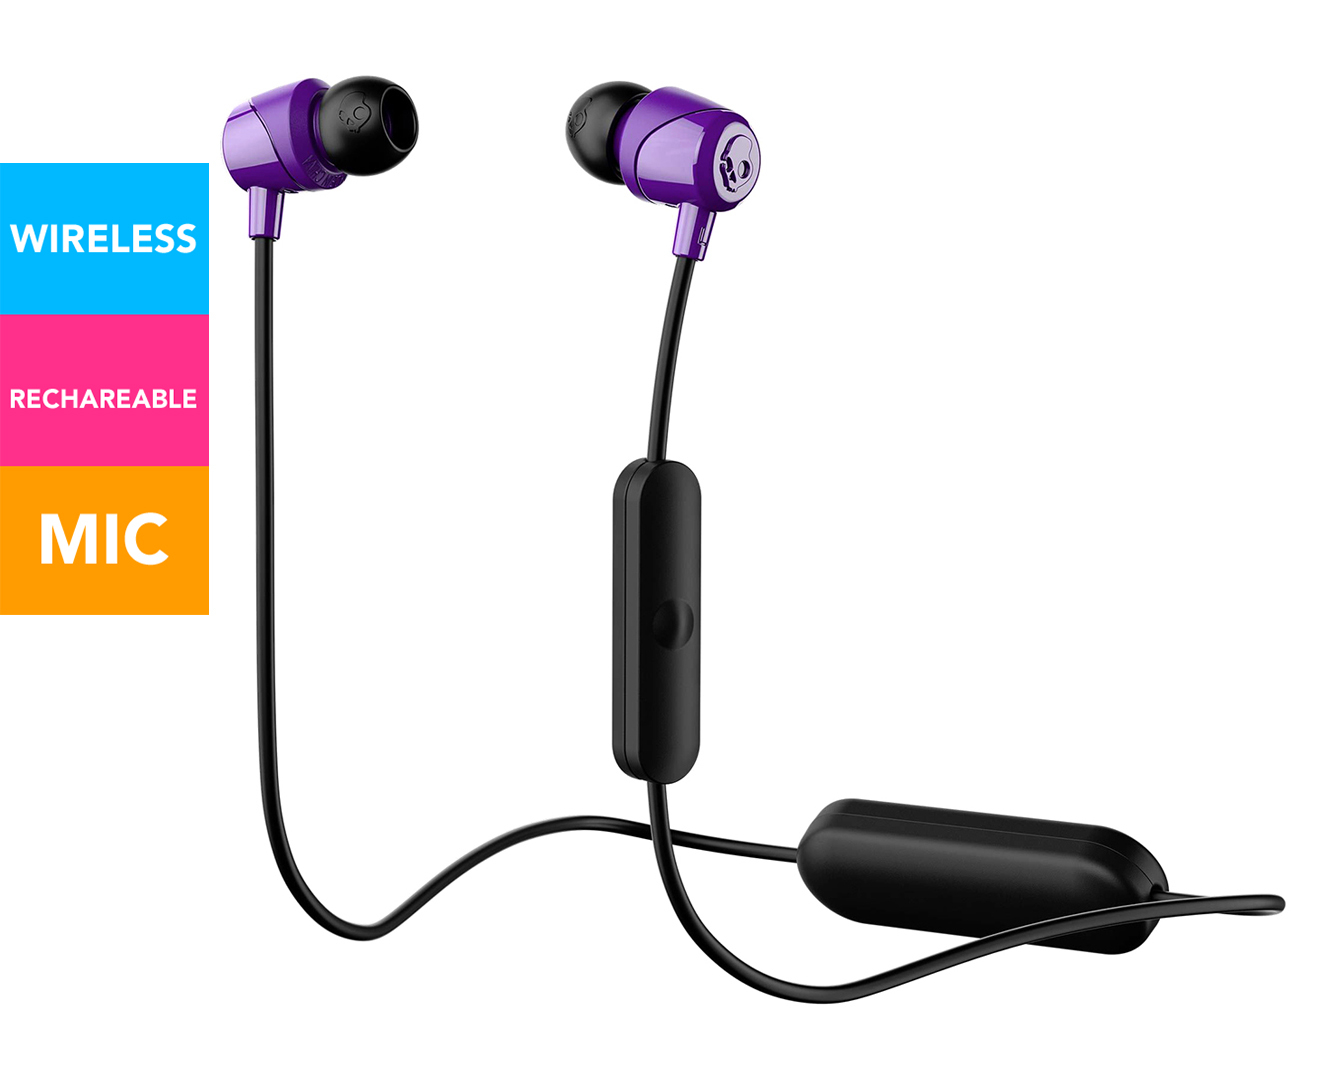 Earbuds bluetooth wireless purple - wireless bluetooth earbuds by freedom